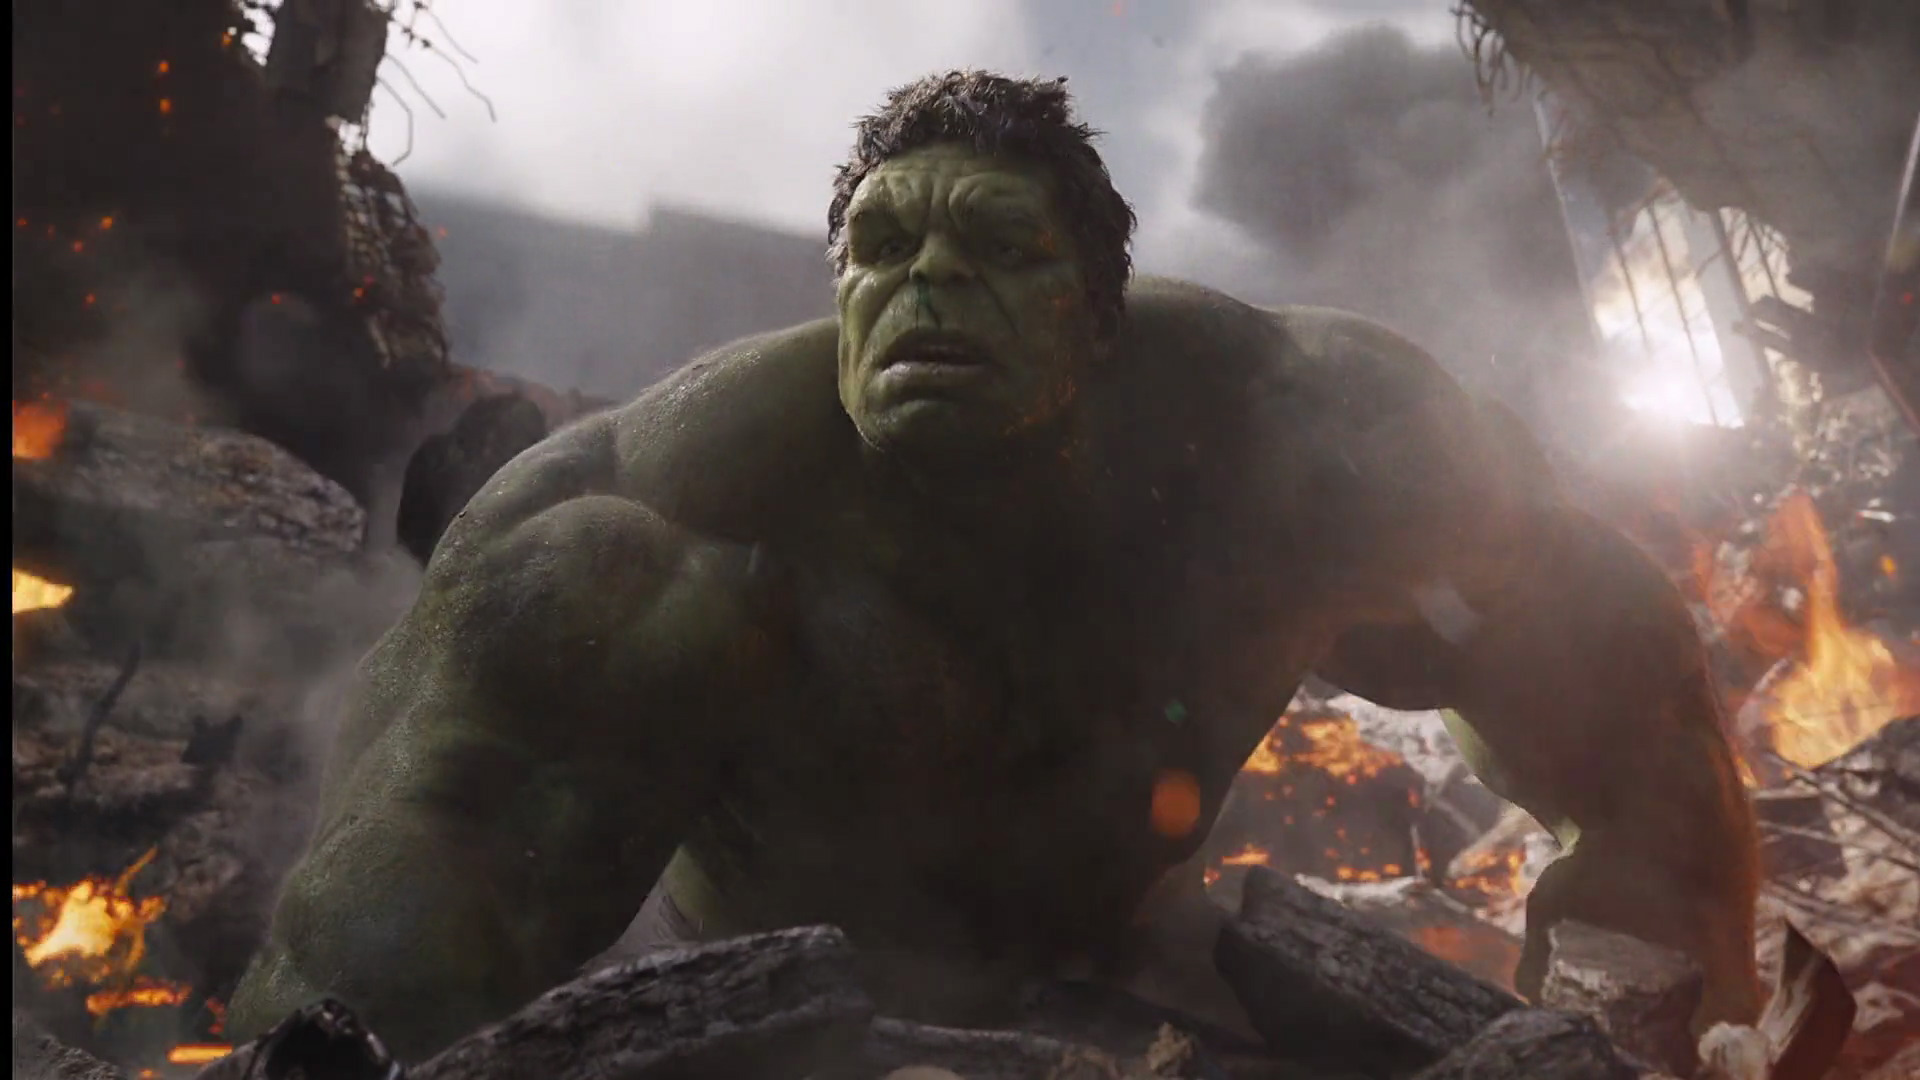 The Avengers Marvel Movies  Works  Archive of Our Own